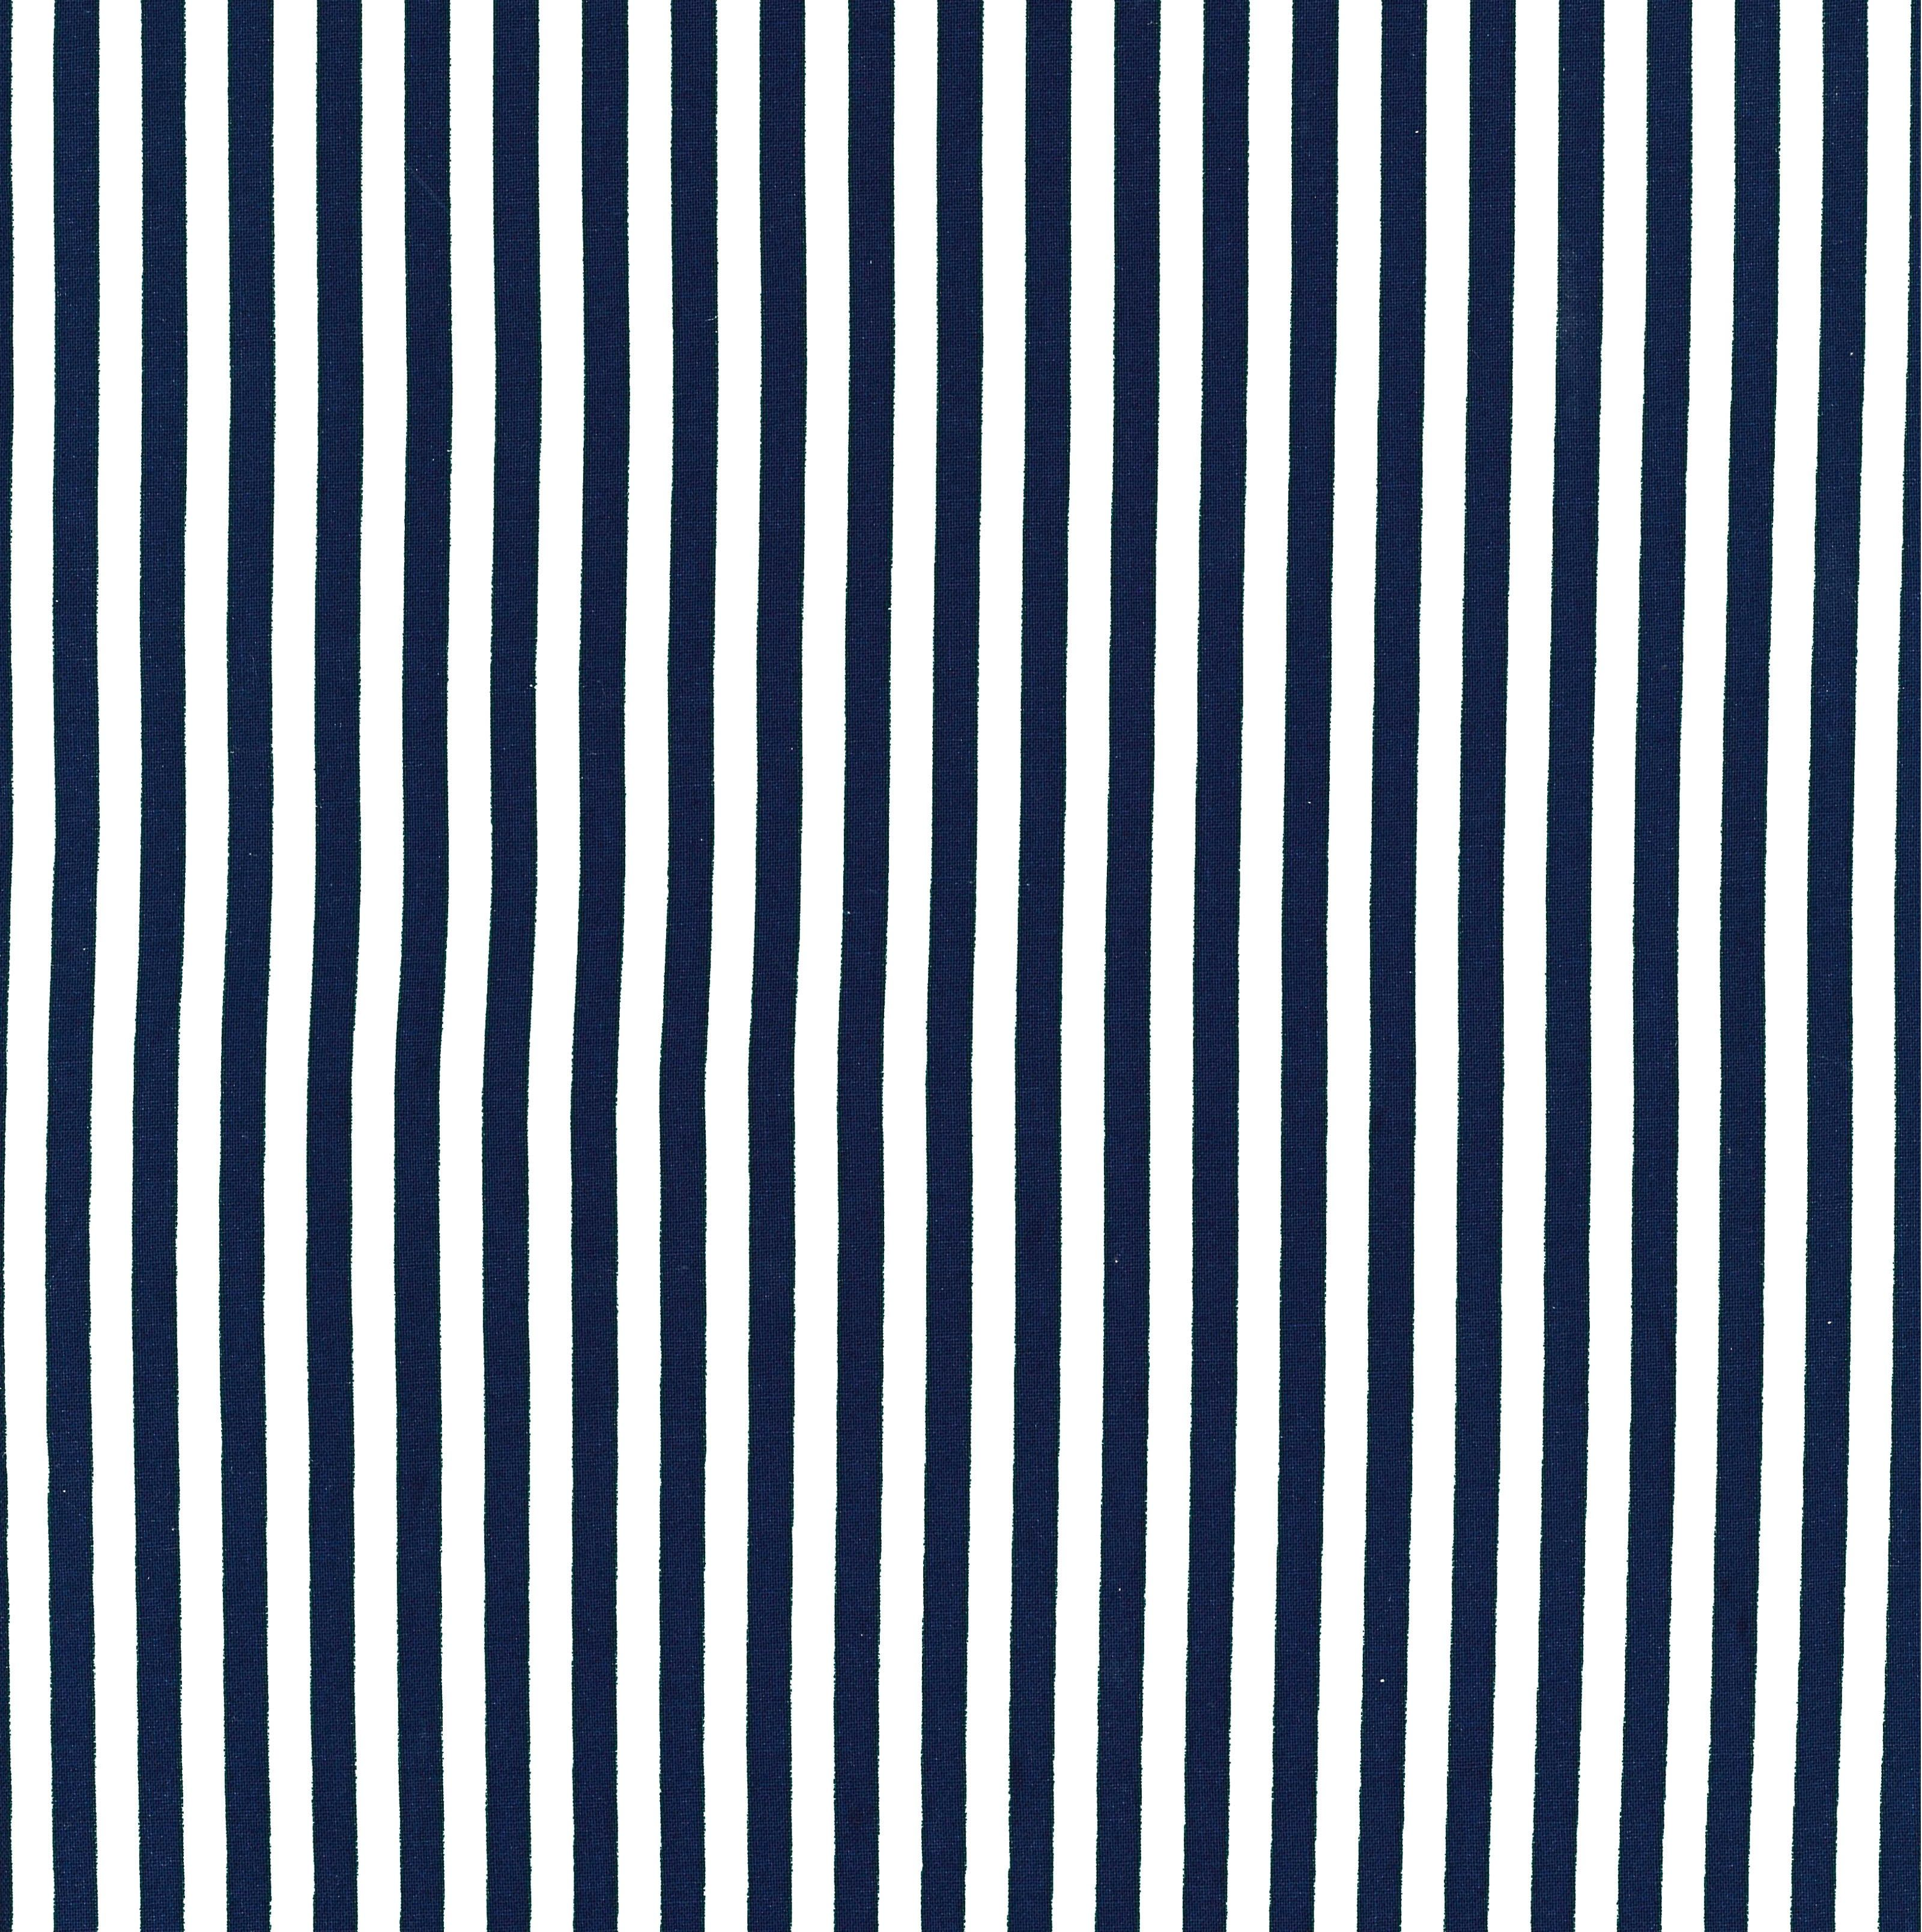 Cx3584 Clown Stripe navy nite blue indigo basics stripes ...